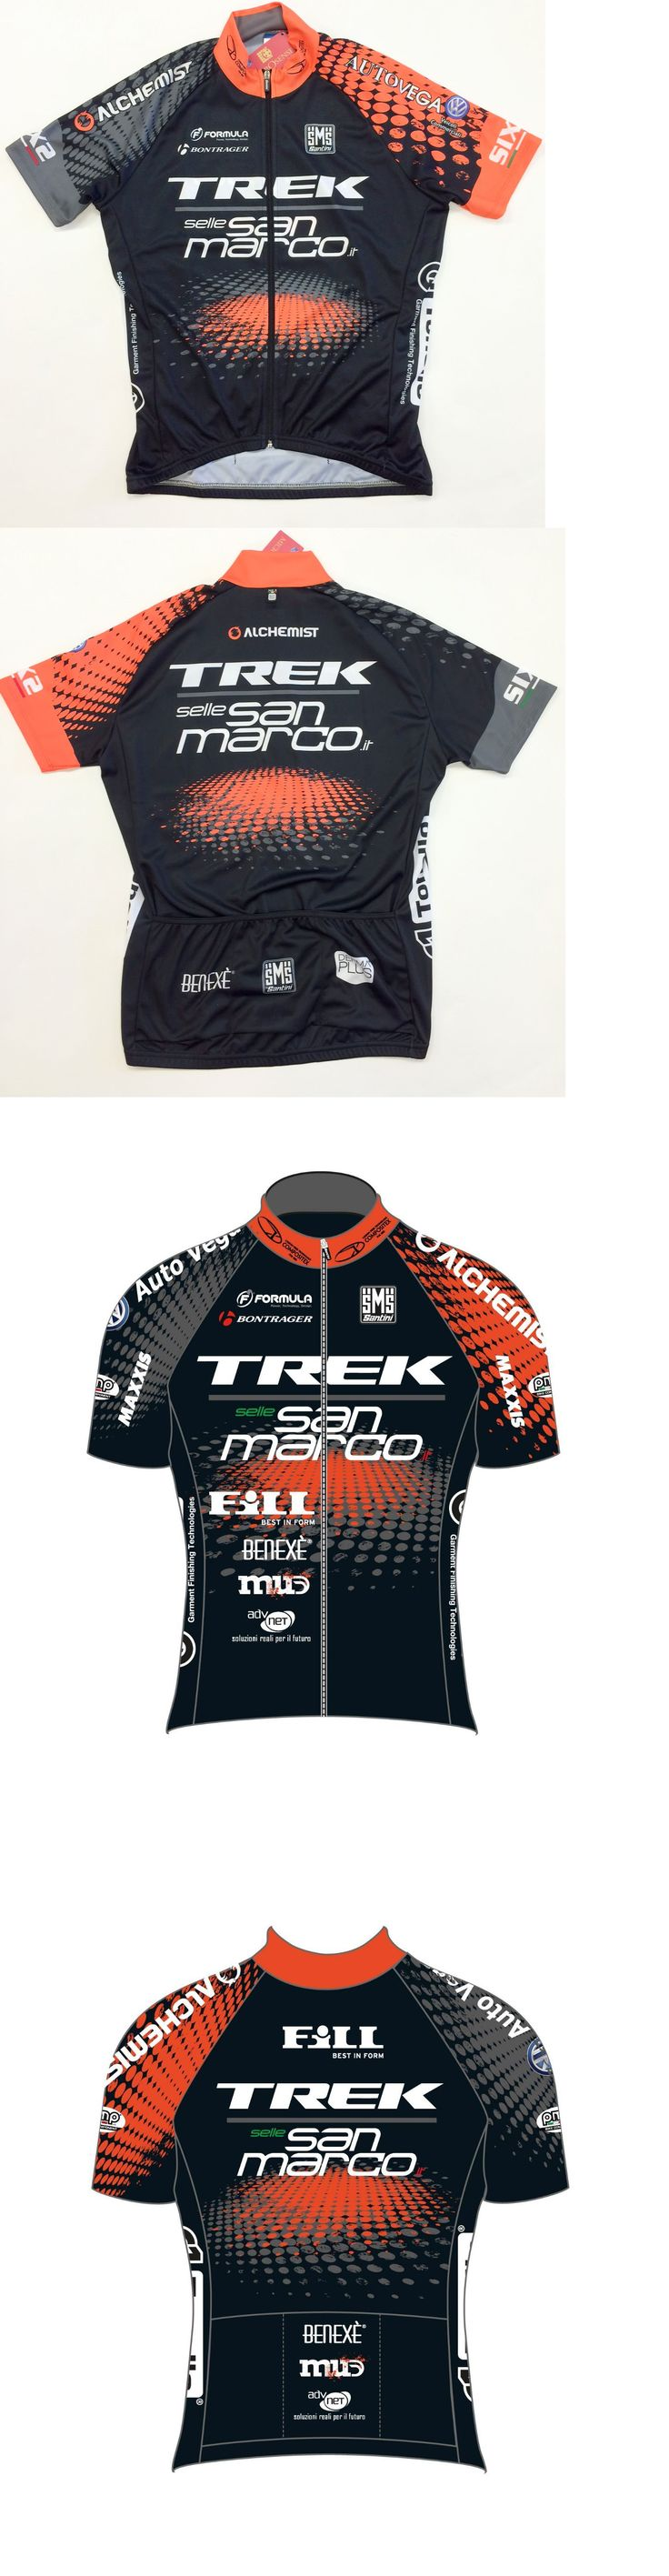 Jerseys 56183: 2016 Trek Mtb Team Cycling Jersey Made In Italy By Santini -> BUY IT NOW ONLY: $99.95 on eBay!